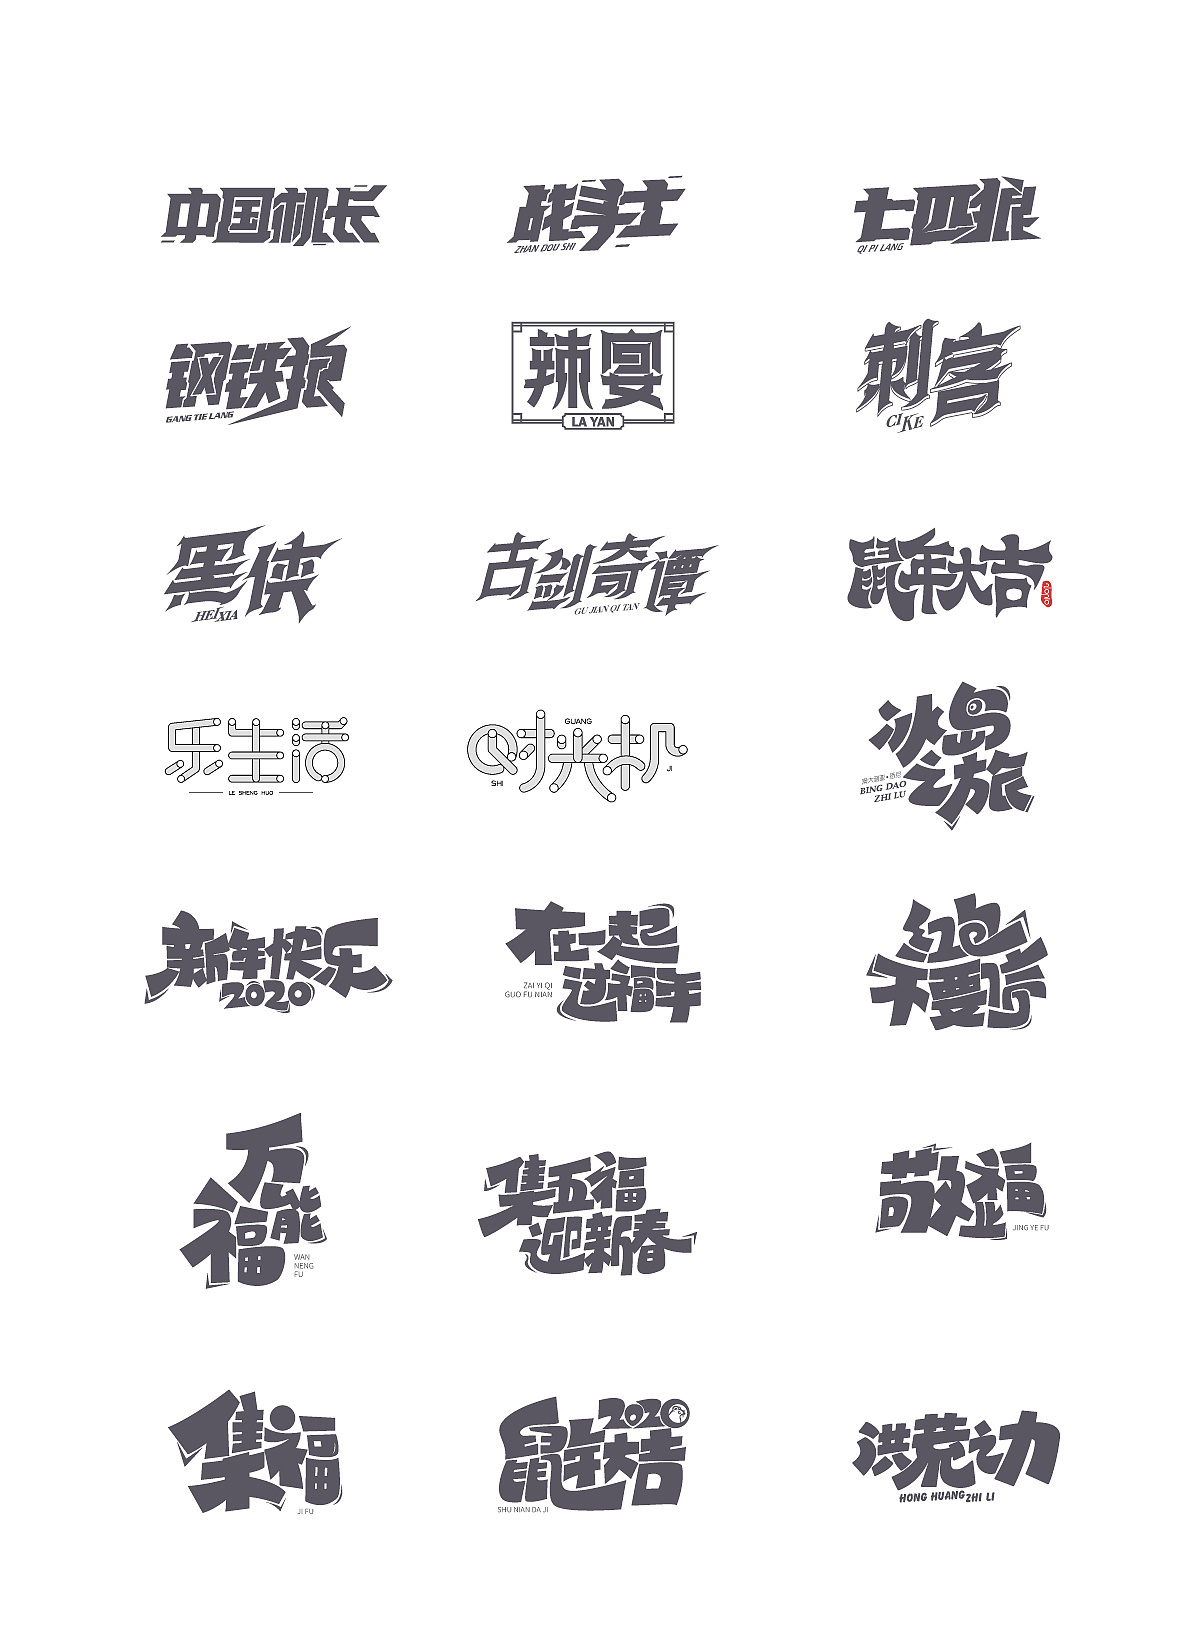 Due to the epidemic situation in Wuhan, some typefaces designed at home are used to cheer up Wuhan